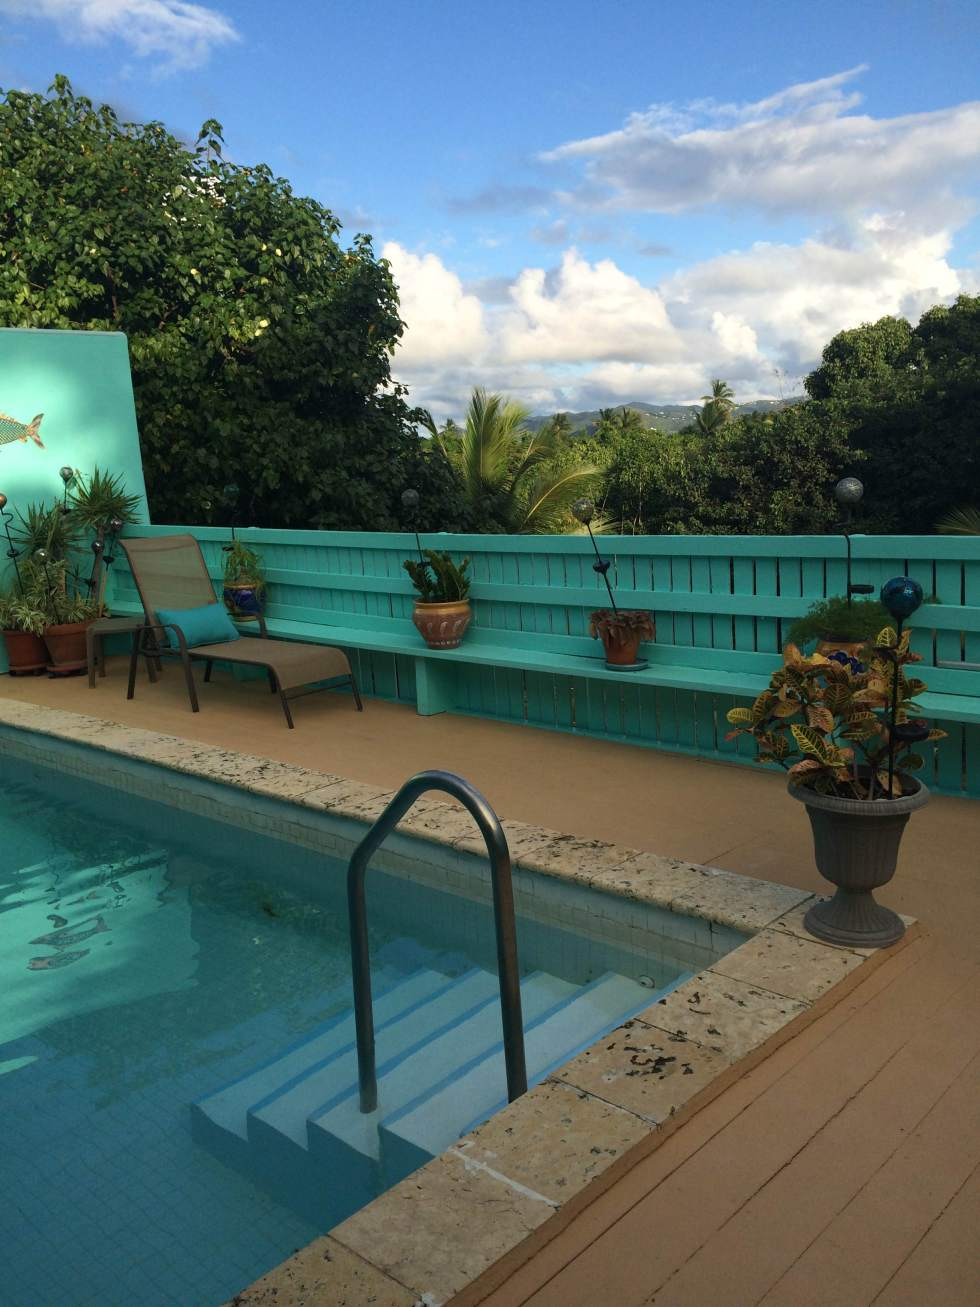 Pavilions and Pools, St. Thomas - USVI Travelogue {Katie at the Kitchen Door}